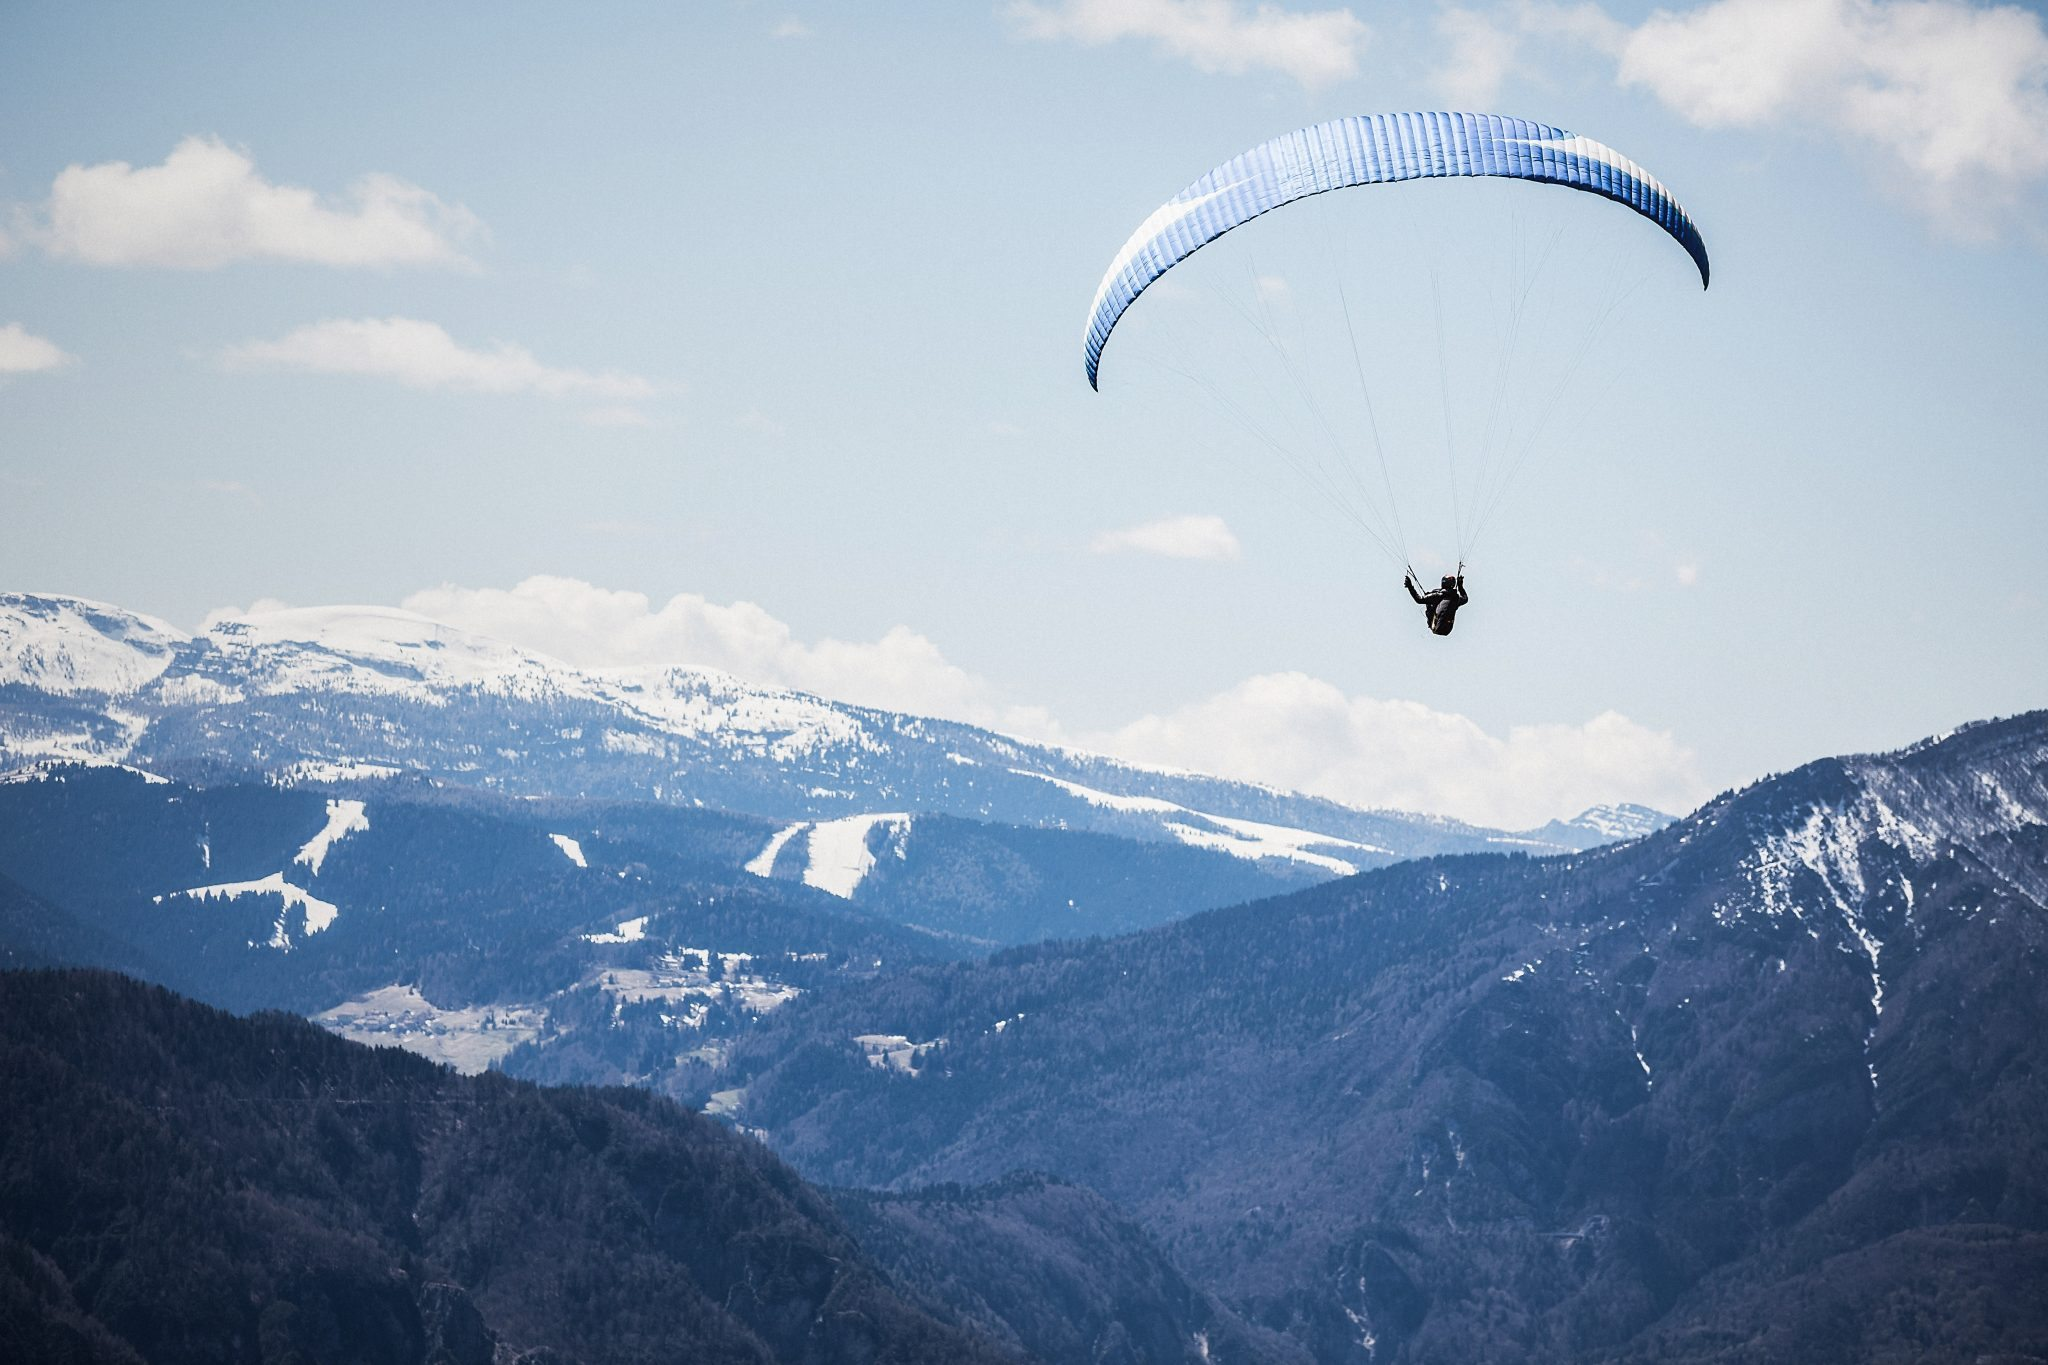 Live Extreme! 17 Adventurous Things Your Term Life Insurance Policy Can Make Less Risky